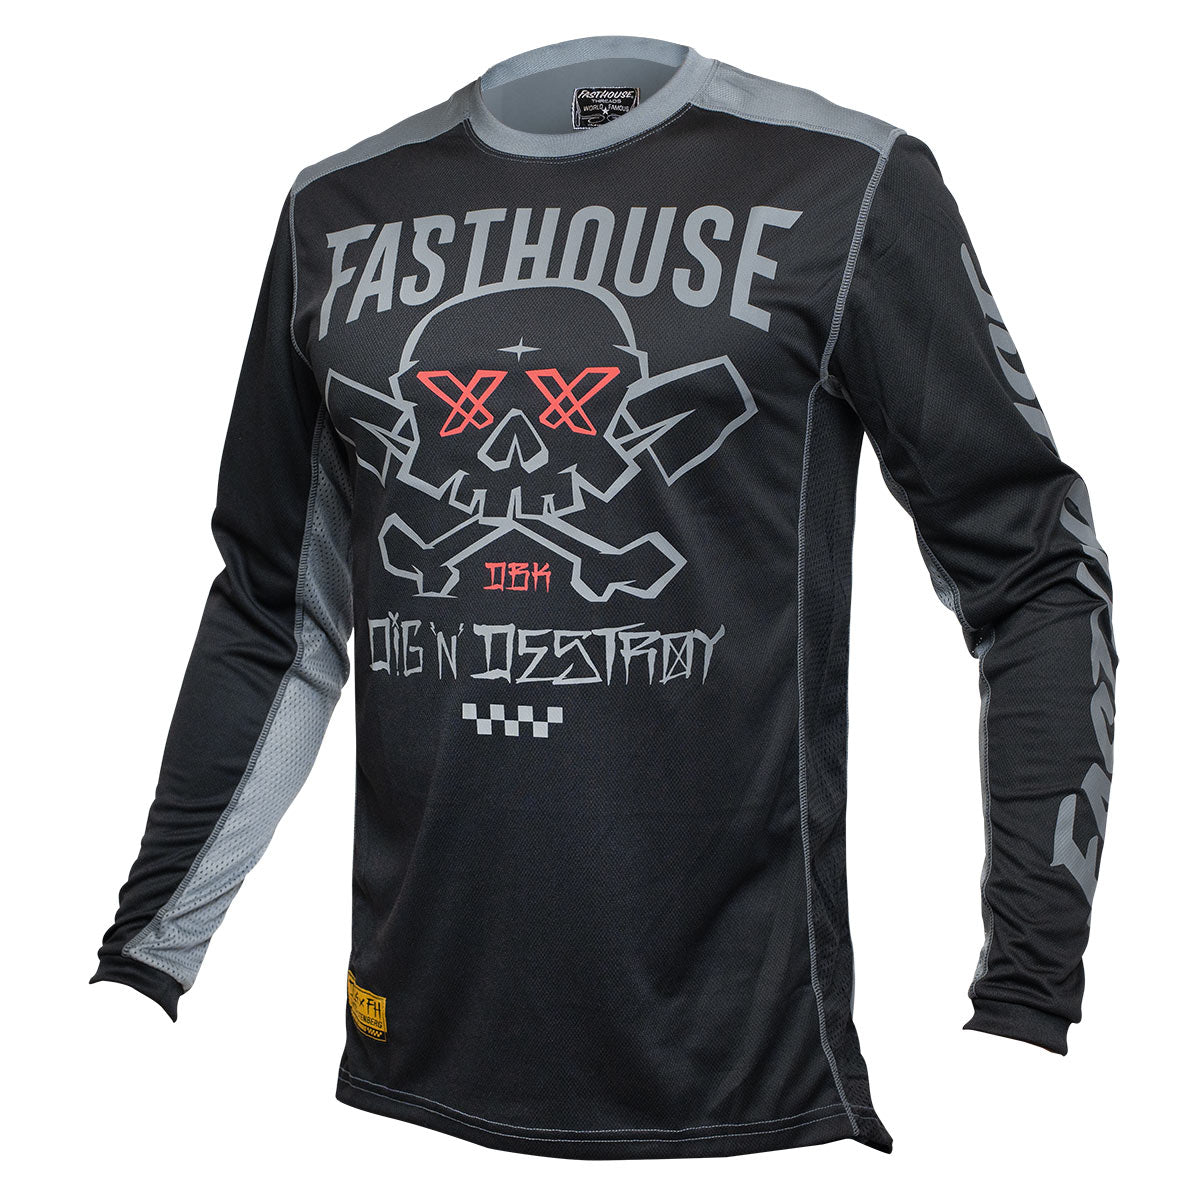 Grindhouse Twitch Jersey - Black/Charcoal